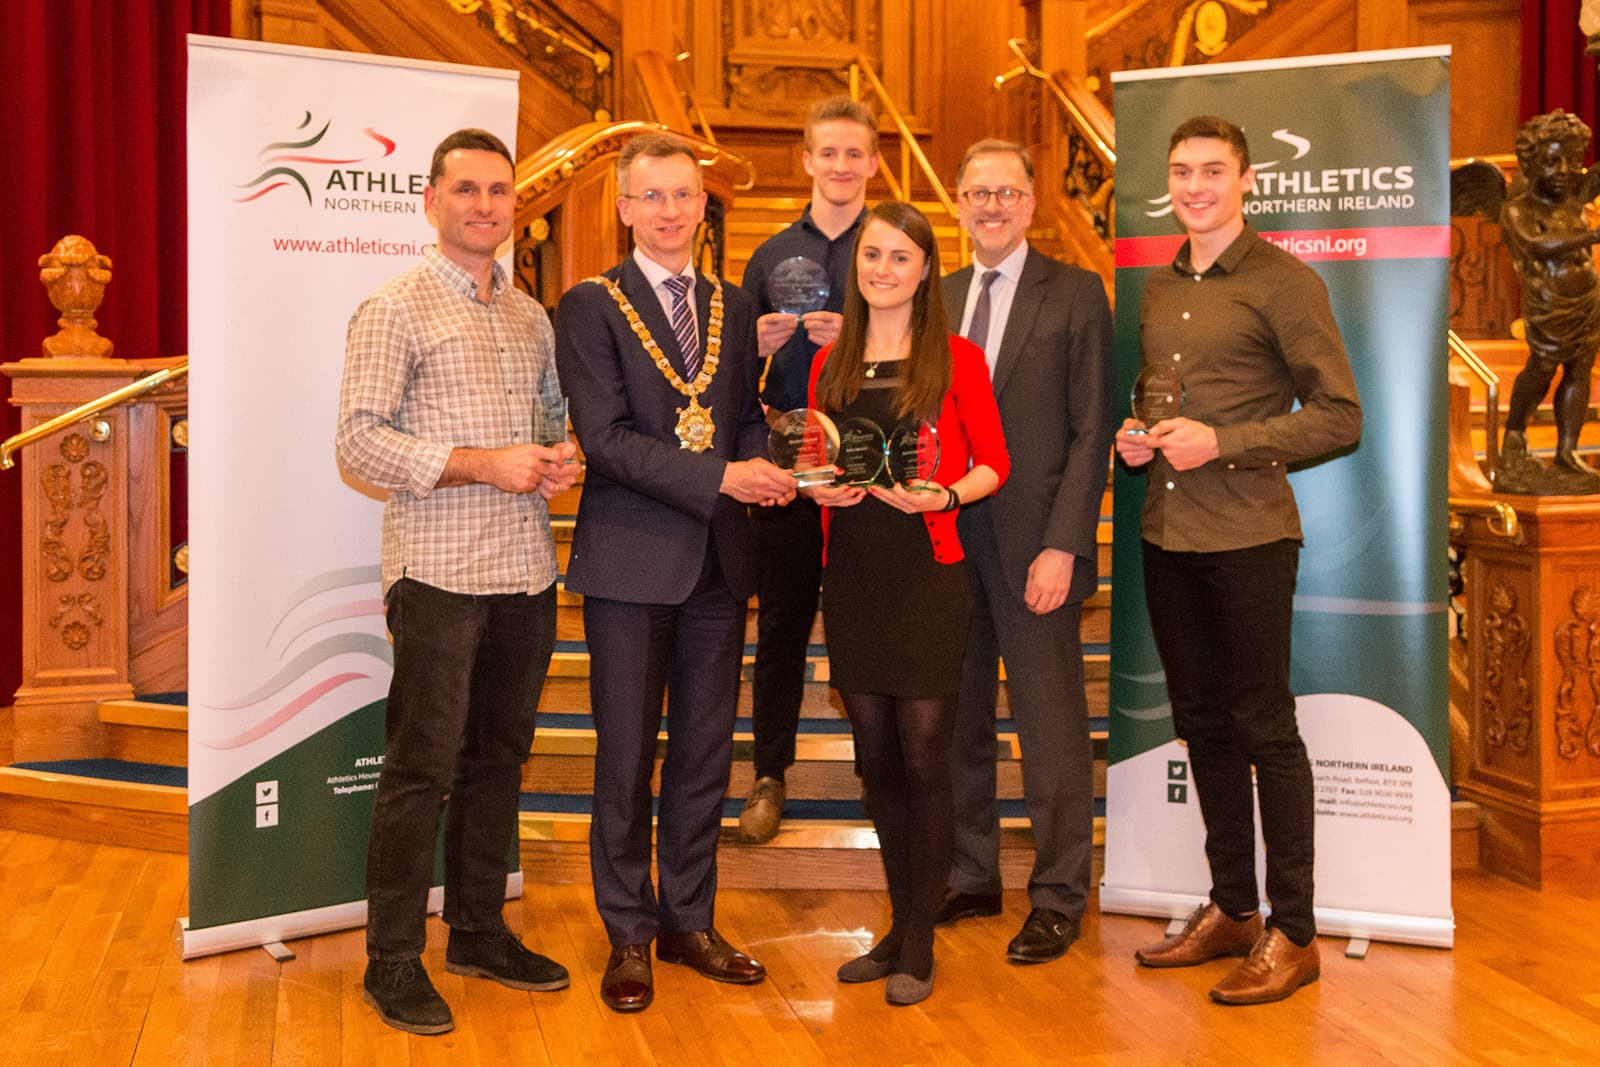 Coaches, Clubs, Officials and Volunteers Celebrated at Annual Awards Evening